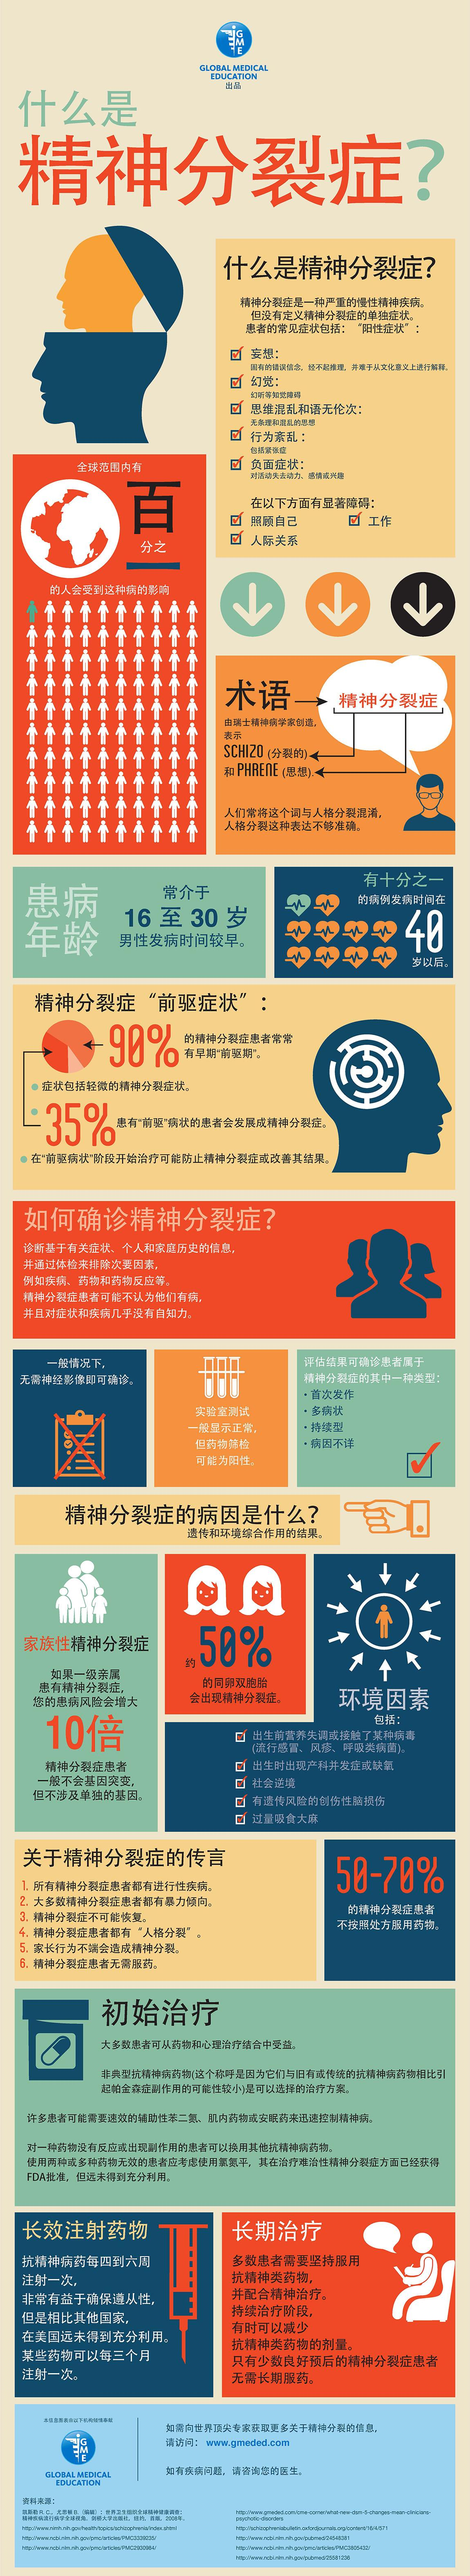 Pin By Global Medical Education On Infographics Chinese Medical Education What Is Schizophrenia Schizophrenia